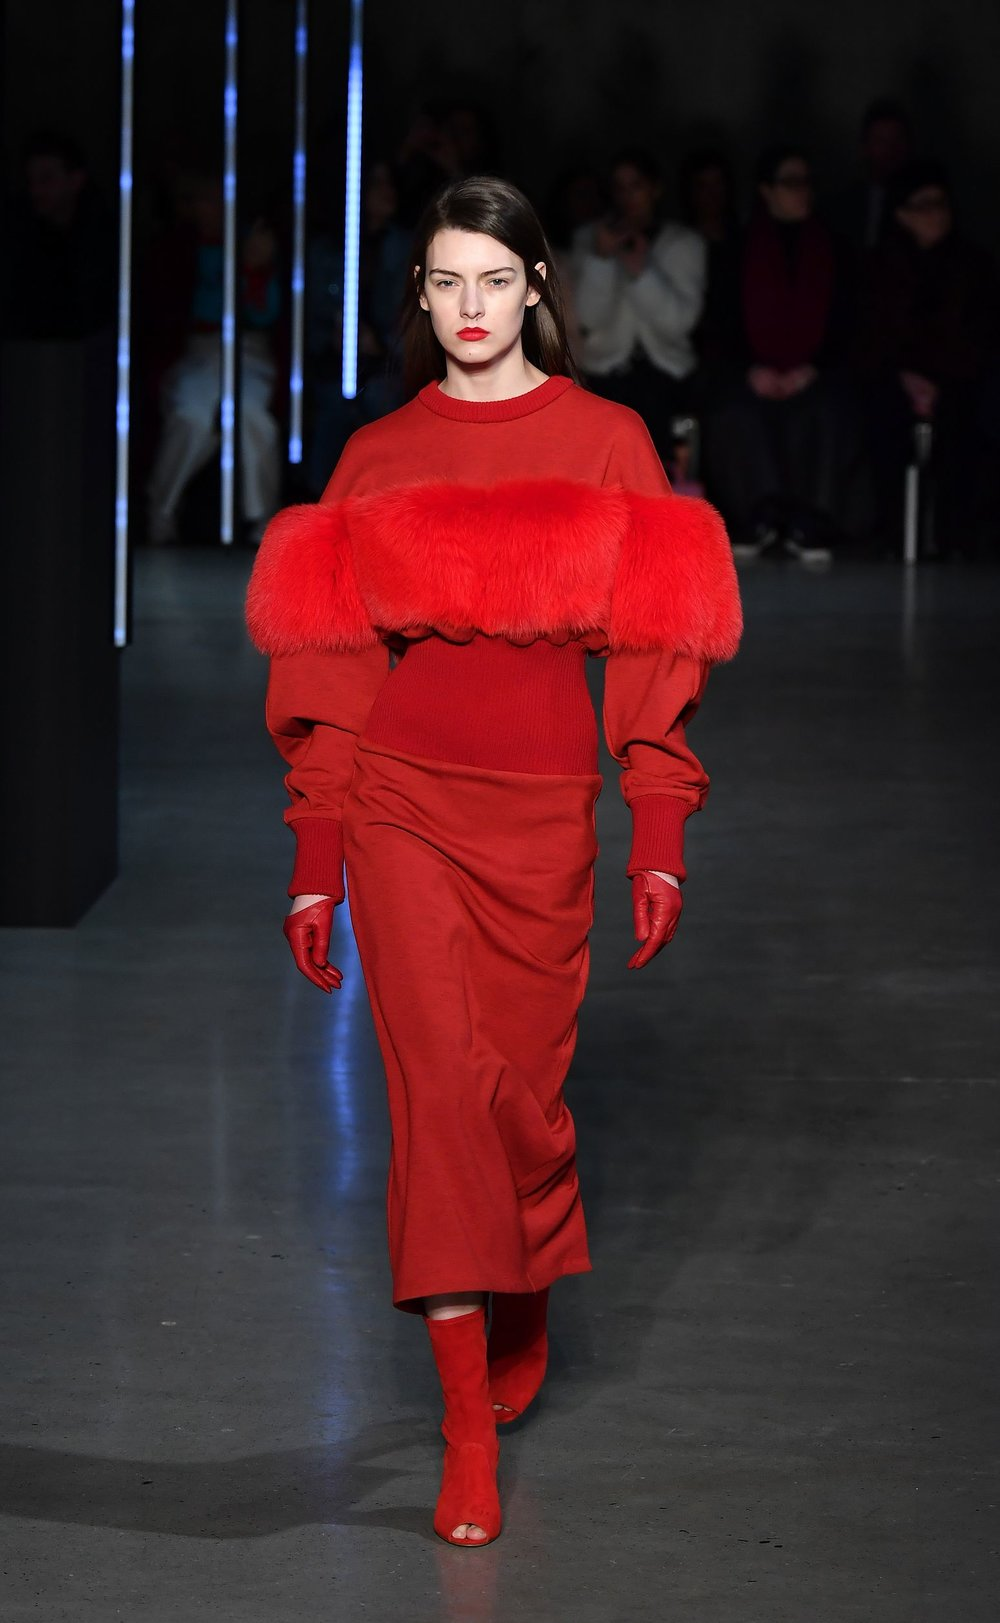 Sally Lapointe - NYFW Fall '18